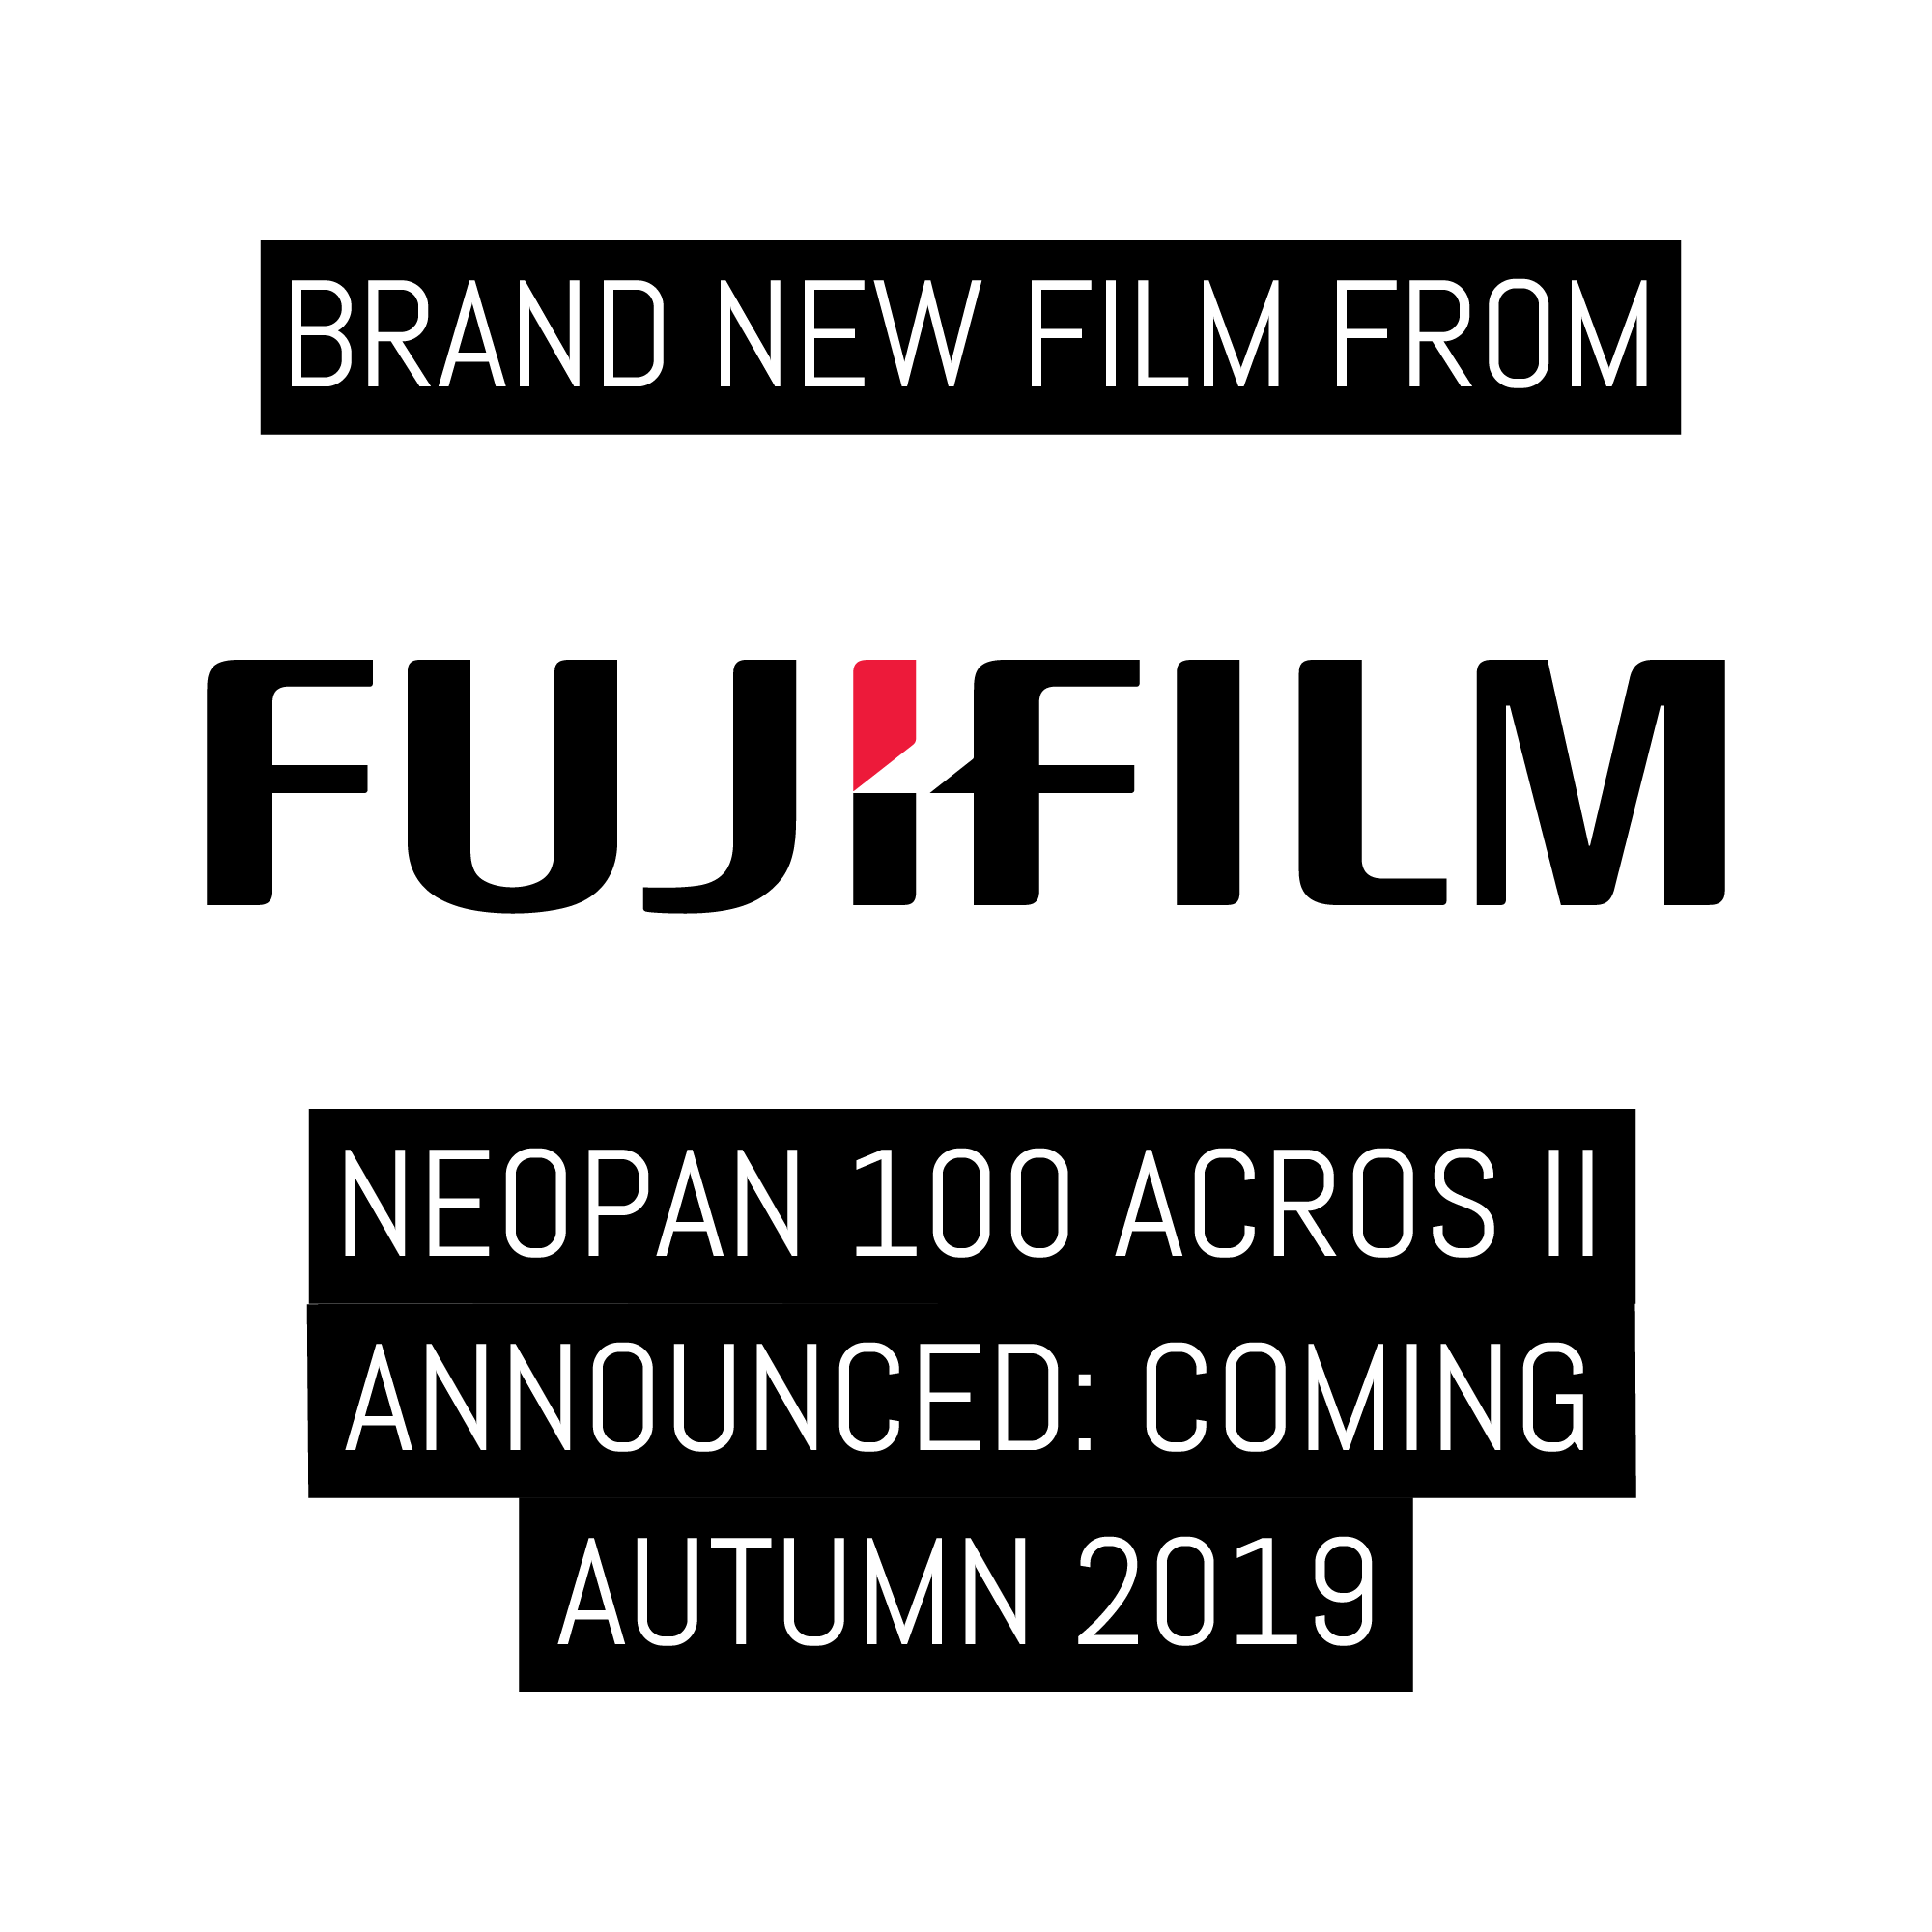 Brand new film from Fujifilm: NEOPAN 100 ACROS II announced, begins shipping Autumn 2019